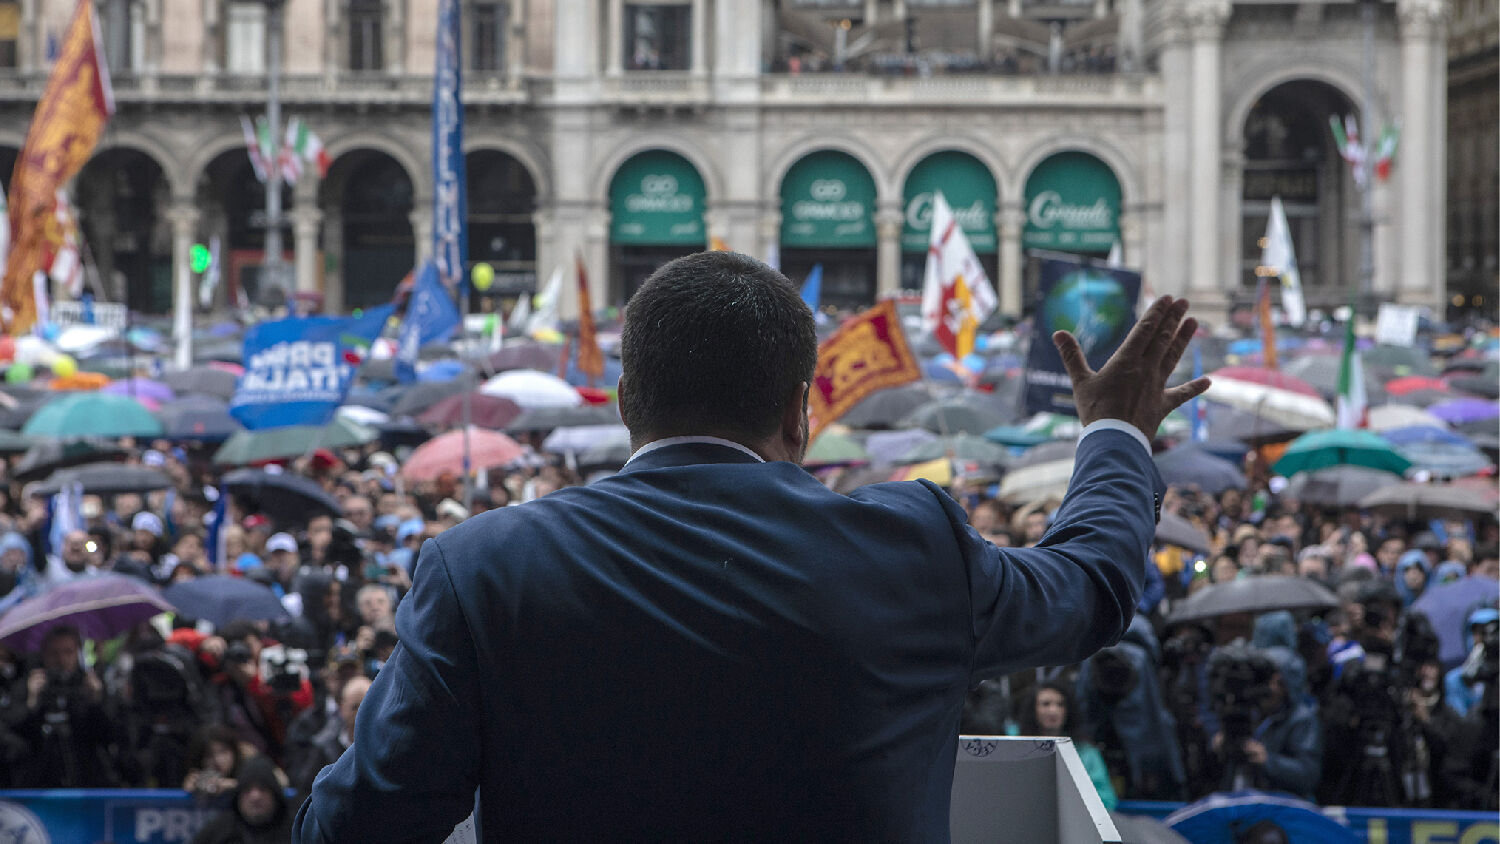 Matteo Salvini goads European Union with vow for Italy to defy budget rules